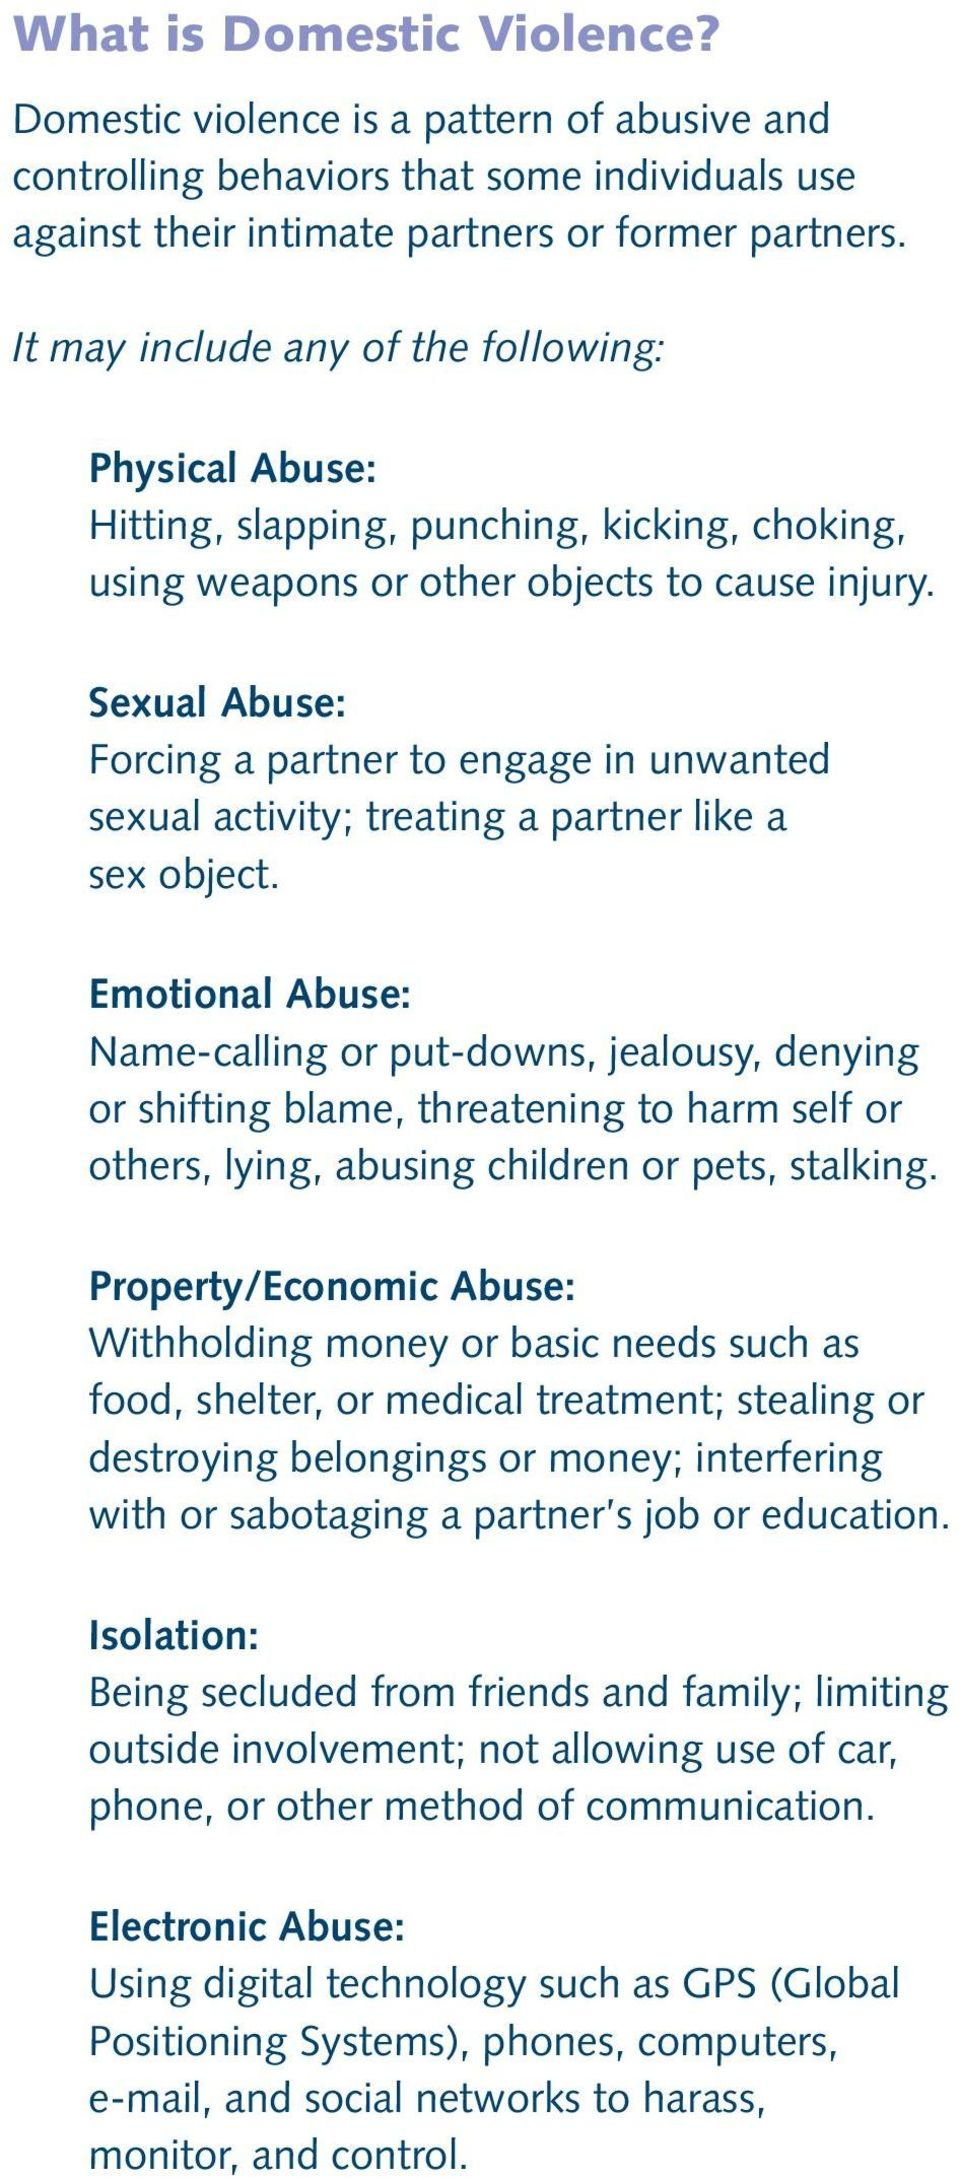 Sexual Abuse: Forcing a partner to engage in unwanted sexual activity; treating a partner like a sex object.